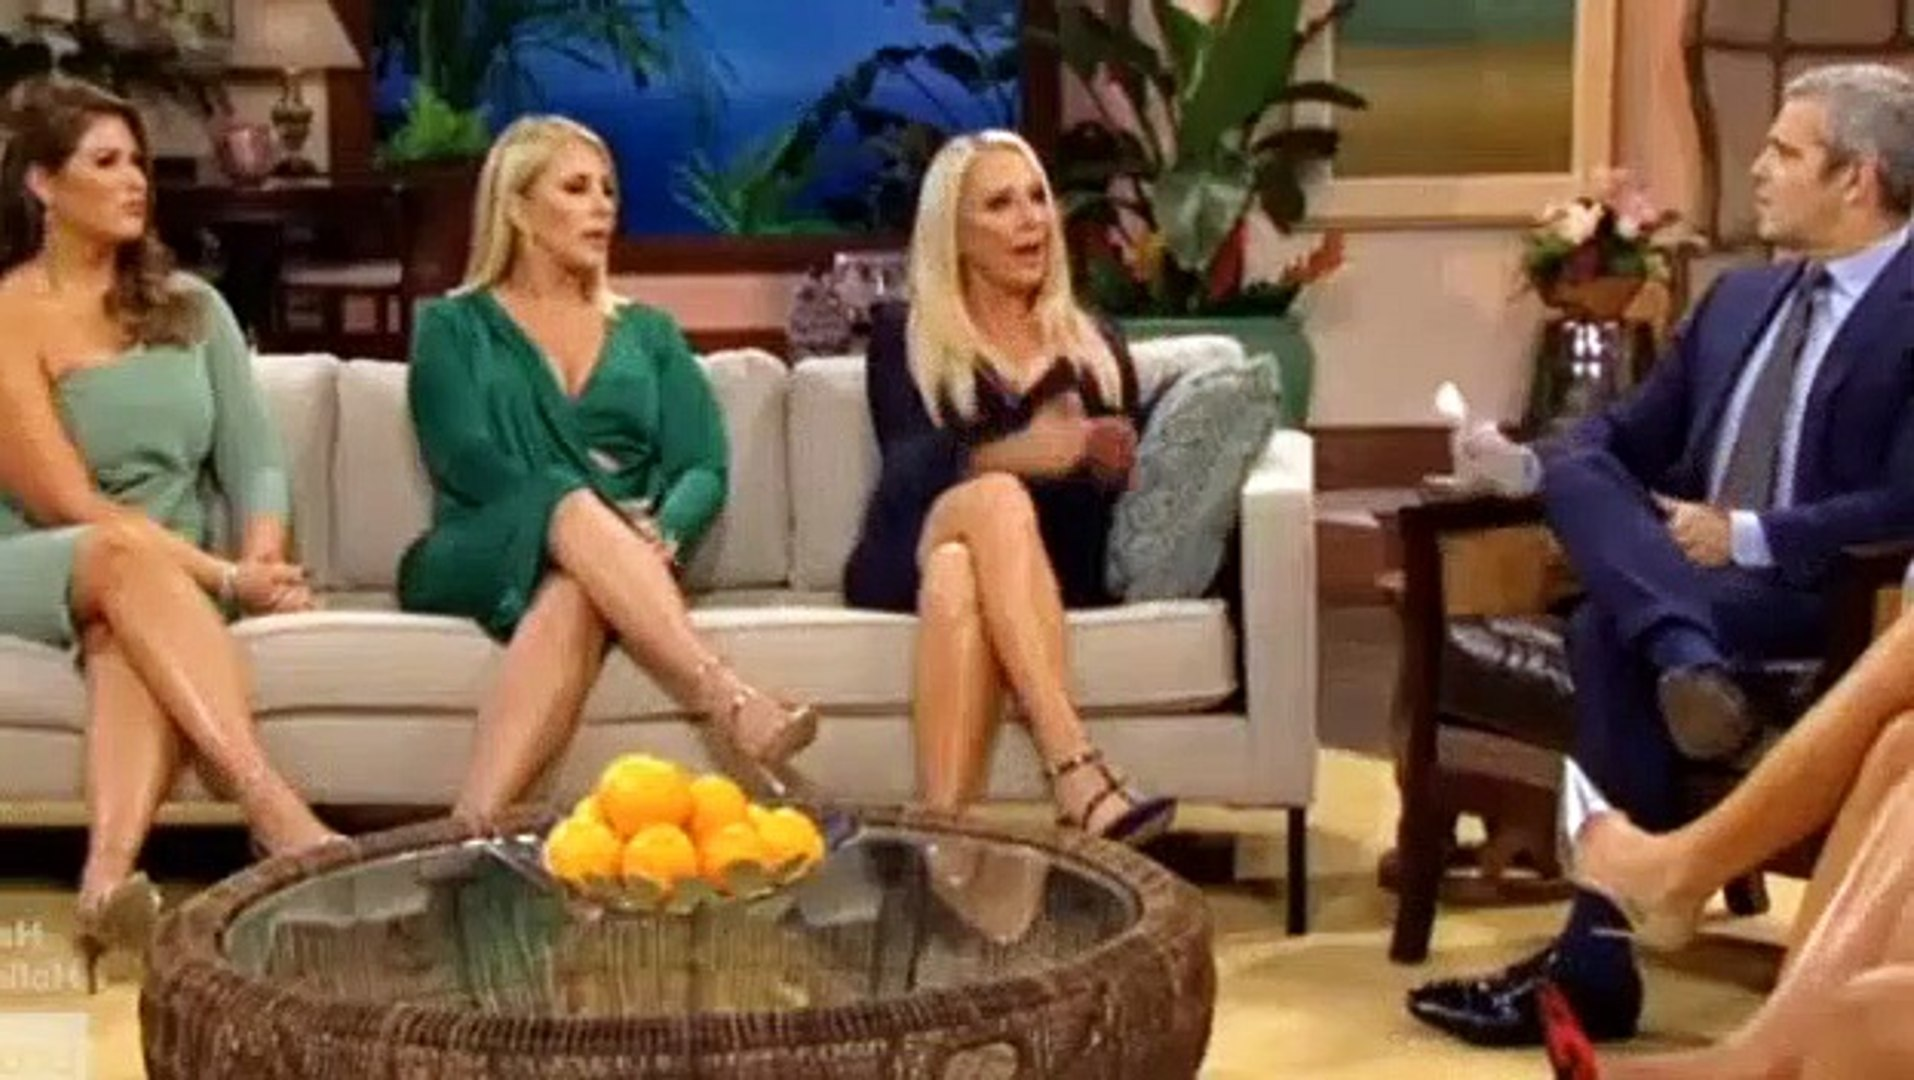 The Real Housewives of Orange County S13 E20 Reunion Prt2 December 02,2018 12/2/2018